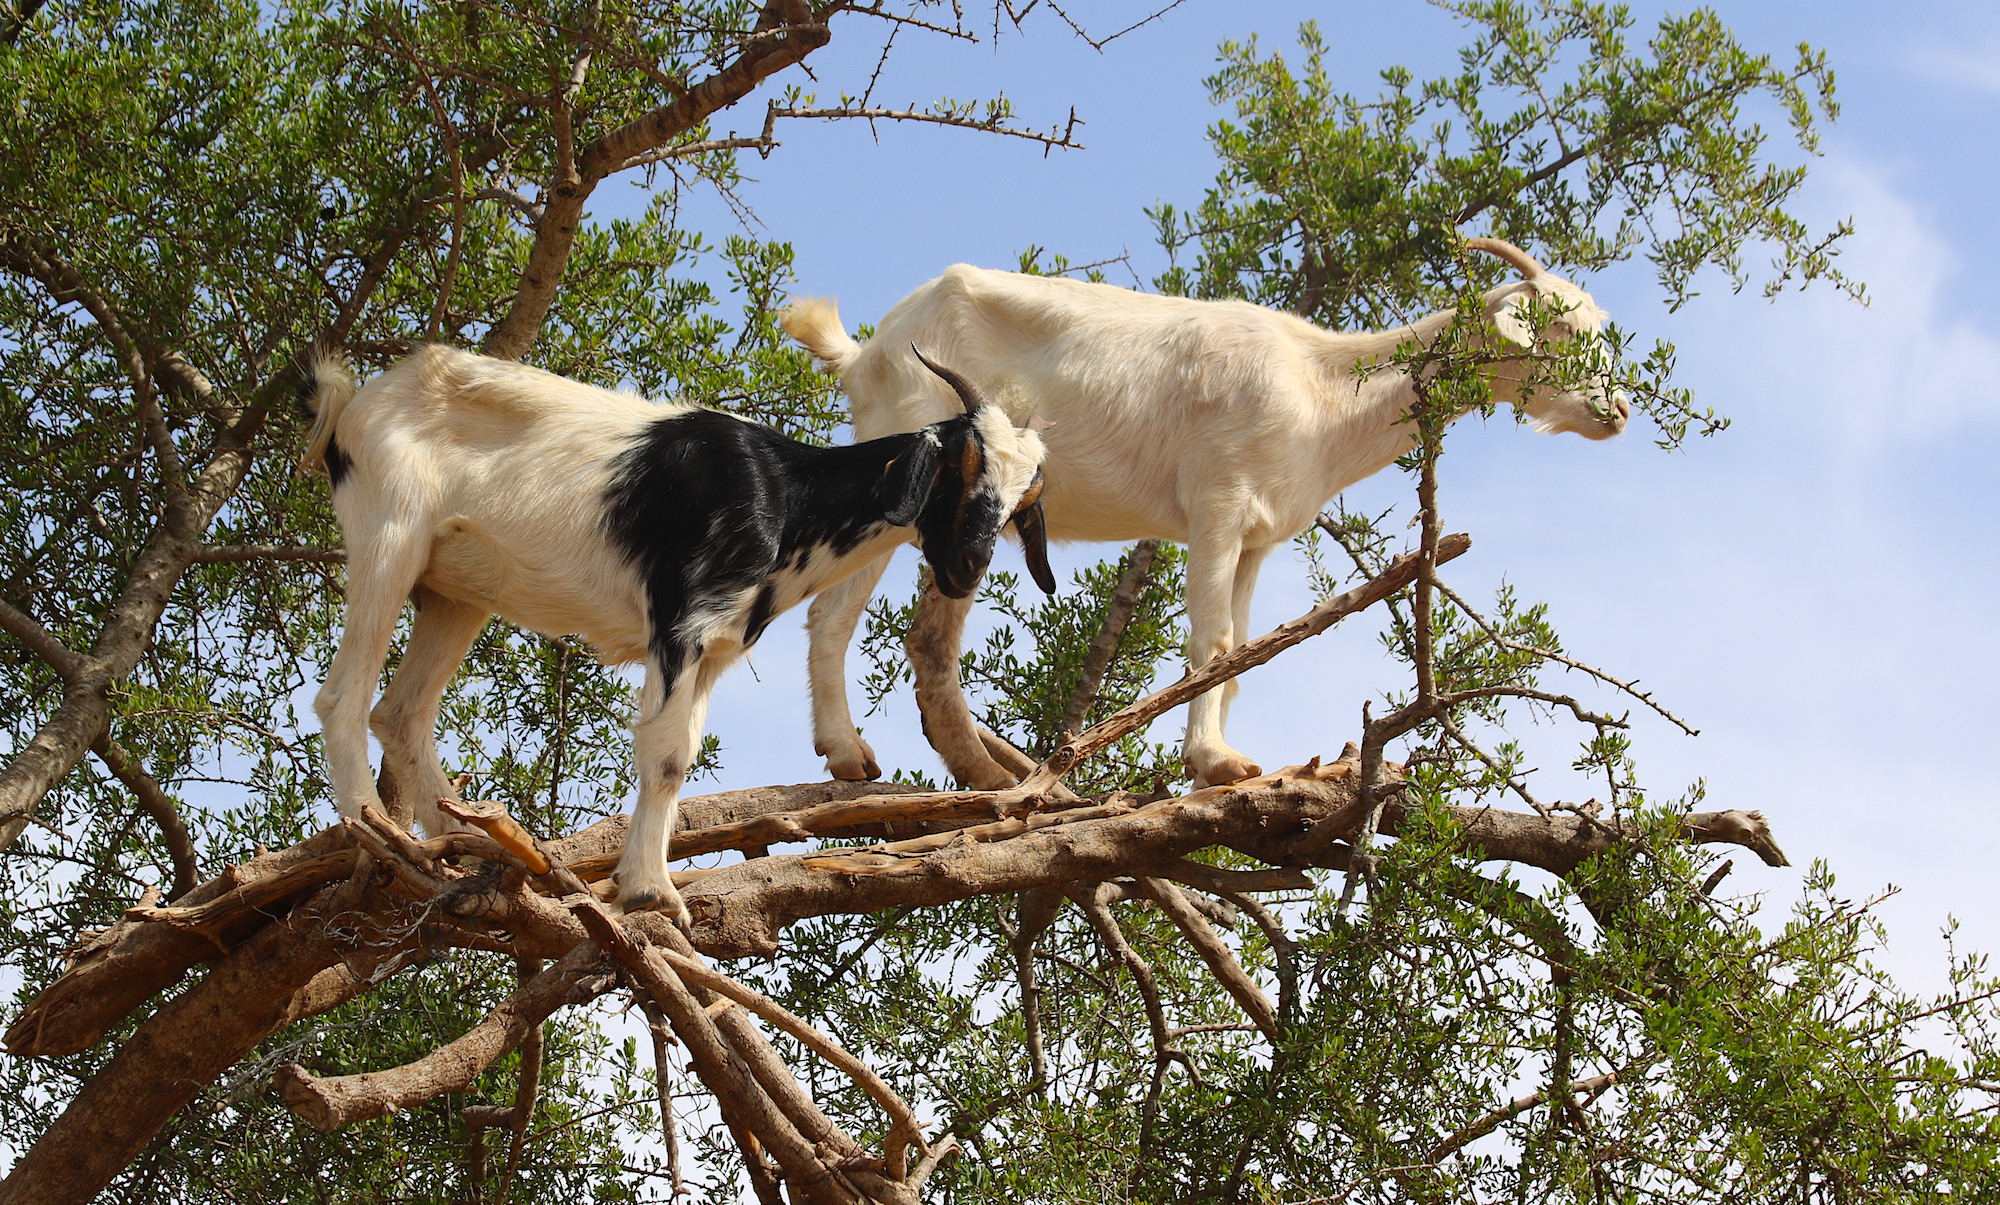 The climbing goats of Morocco